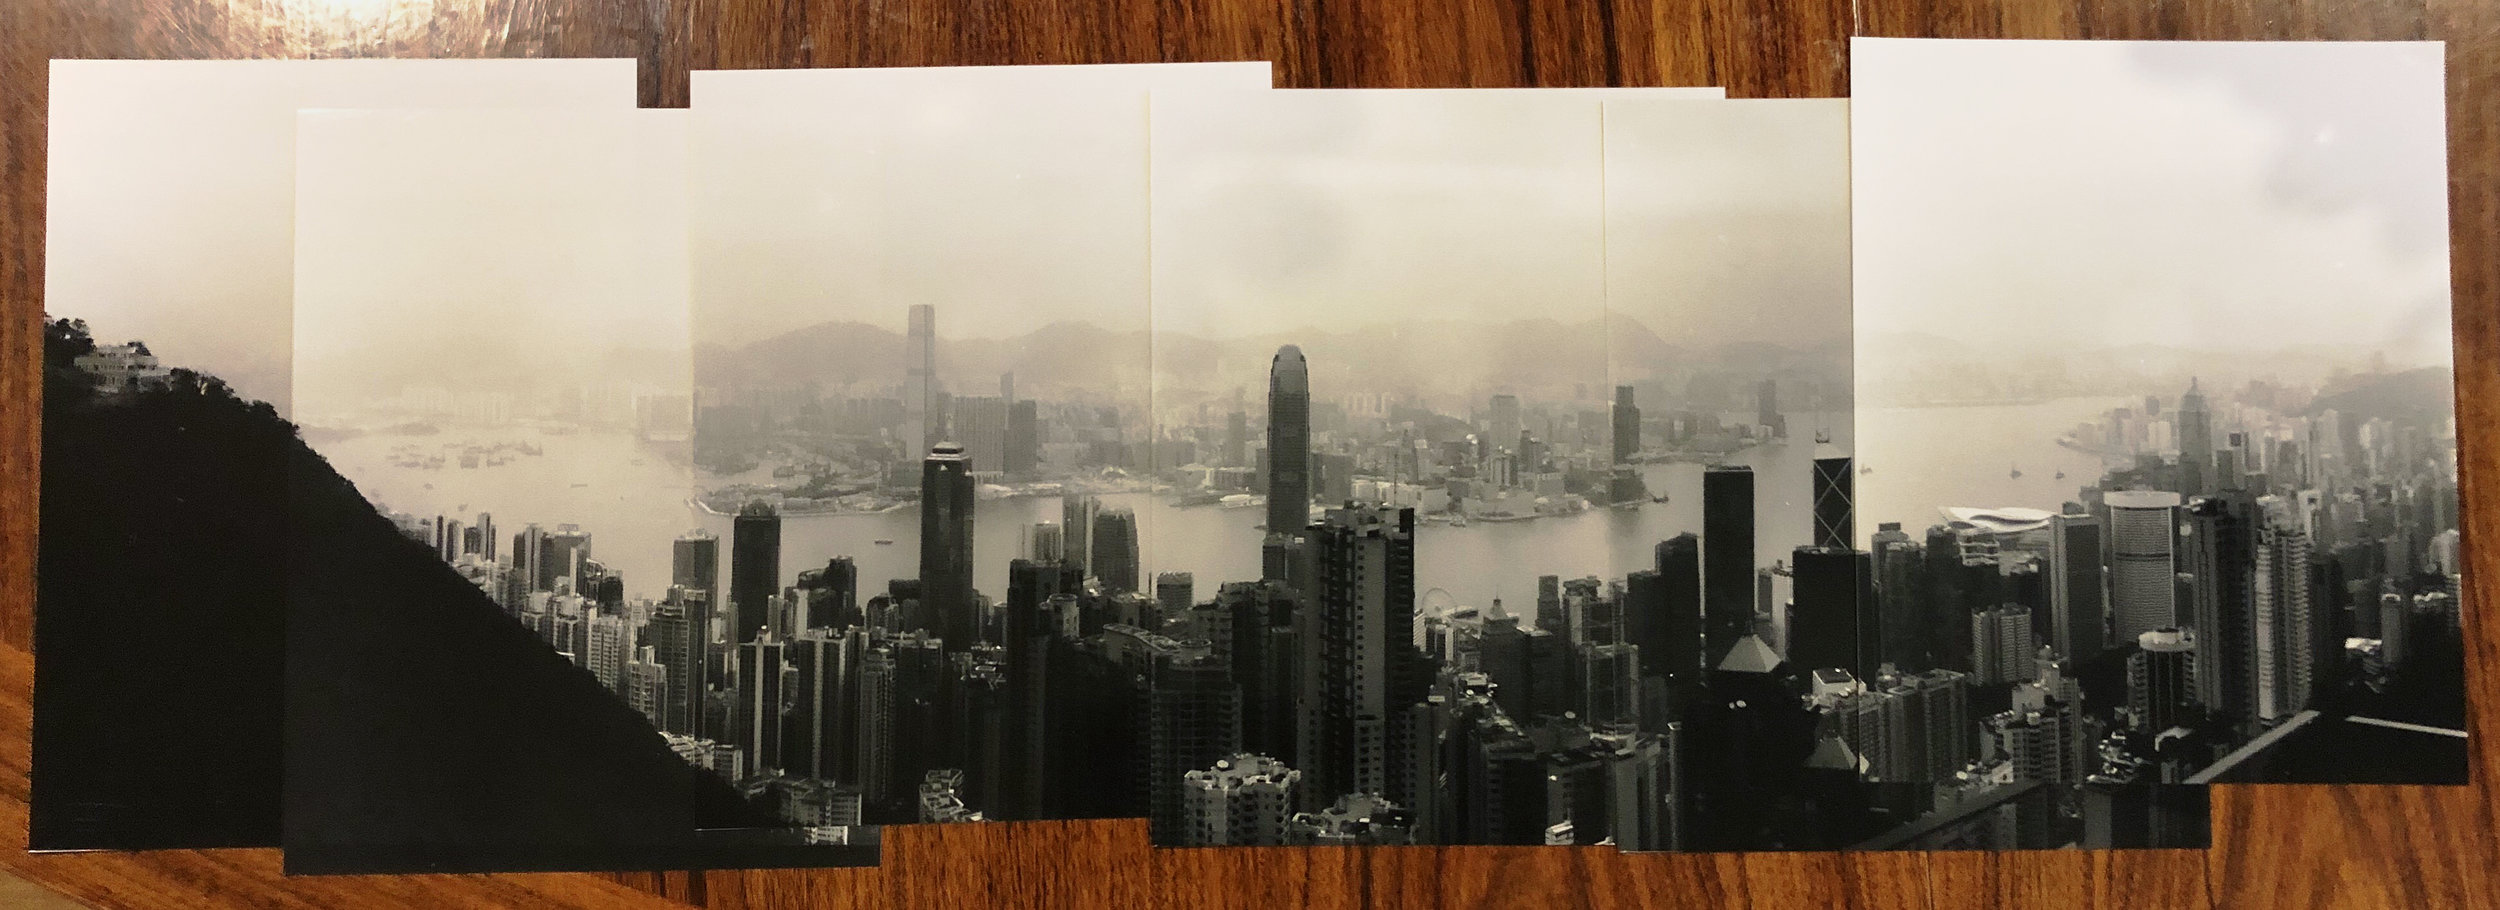 Andrew's panorama of a very different Hong Kong